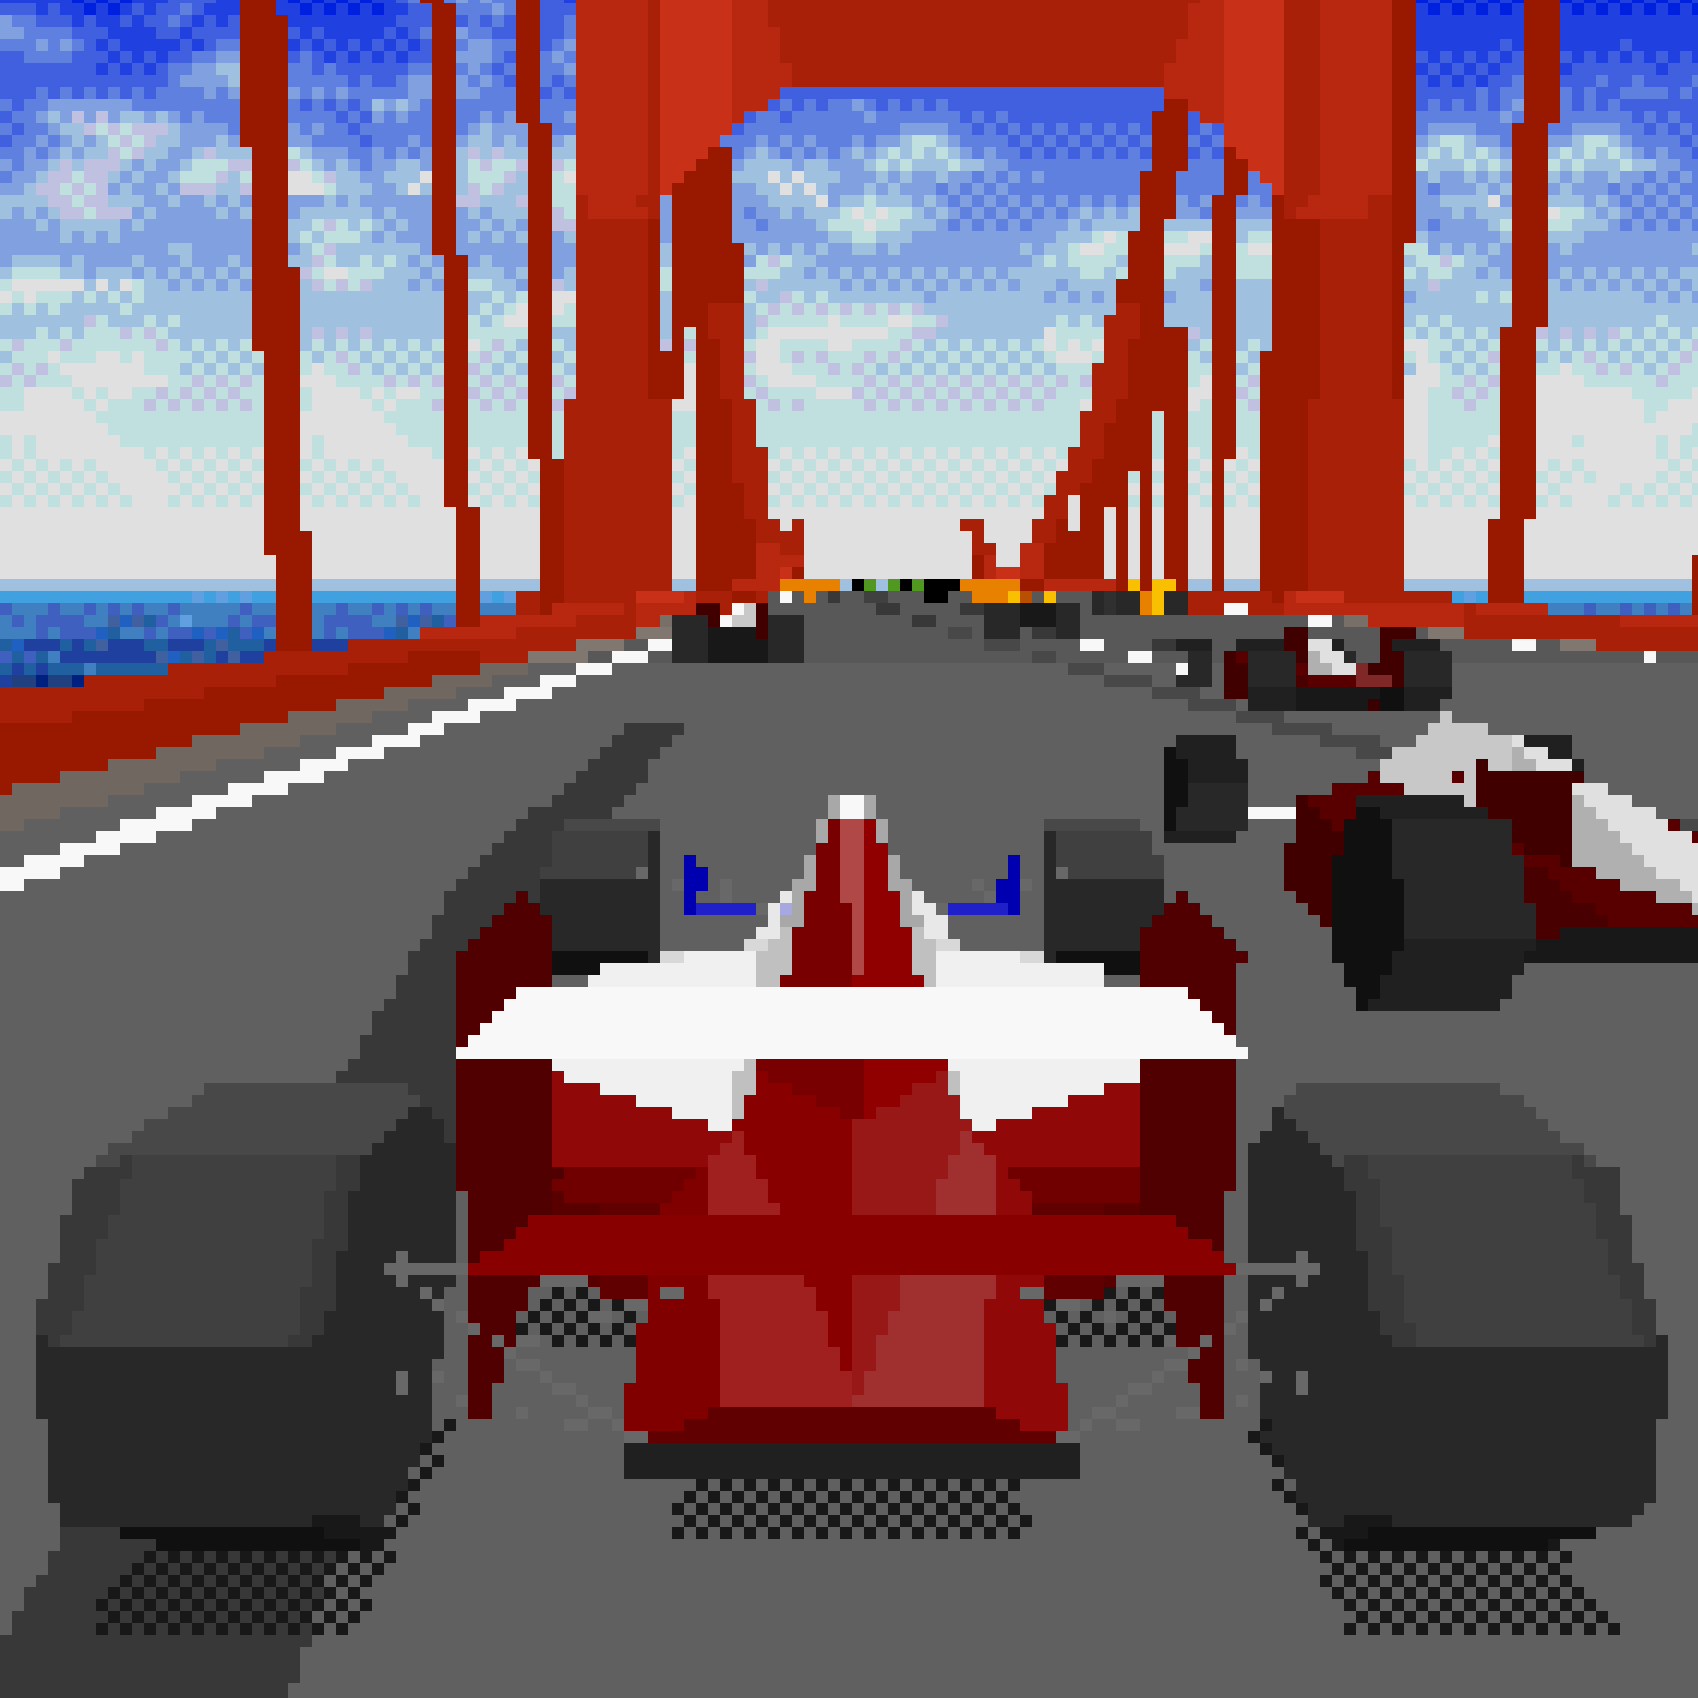 Racing the Prototype in Virtua Racing.